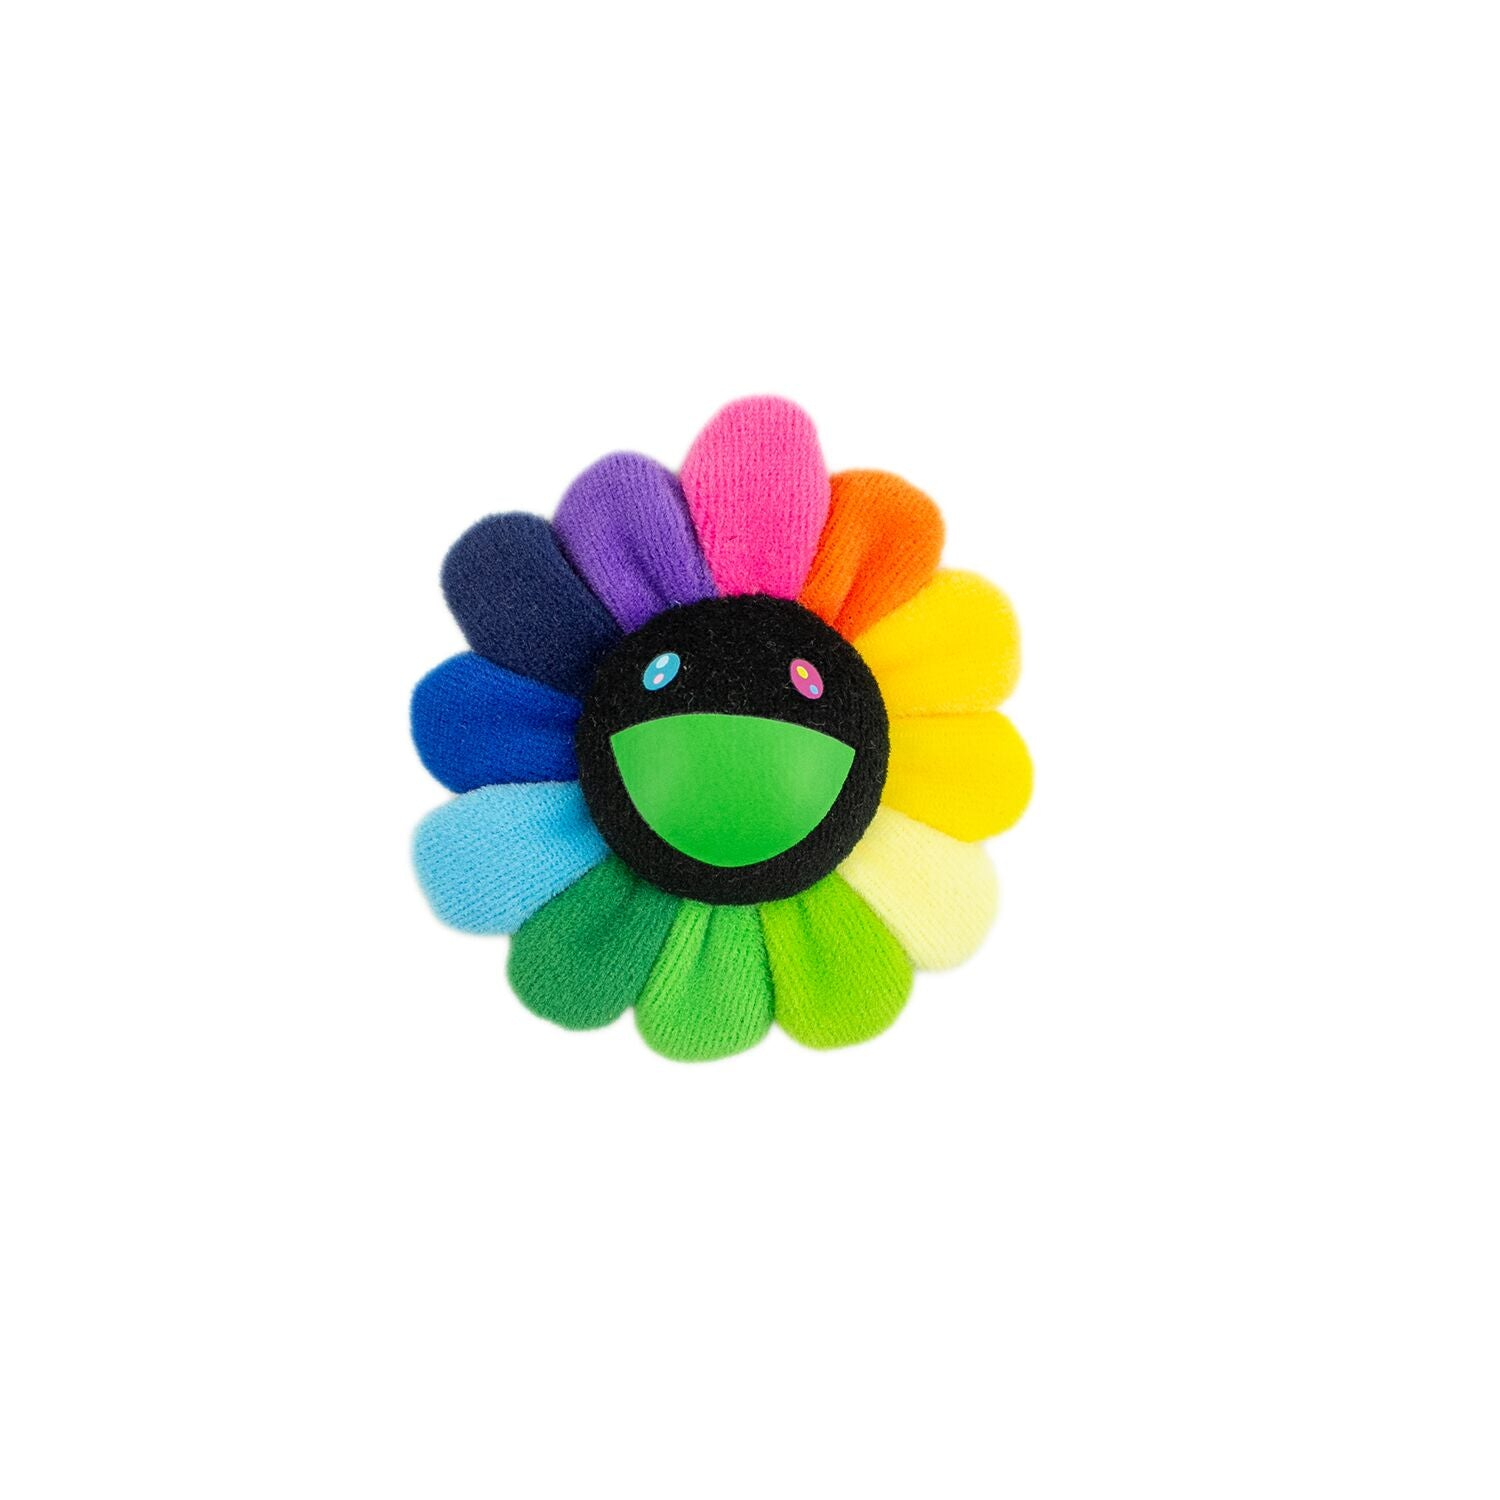 FLOWER PLUSH KEY CHAIN RAINBOW & BLACK